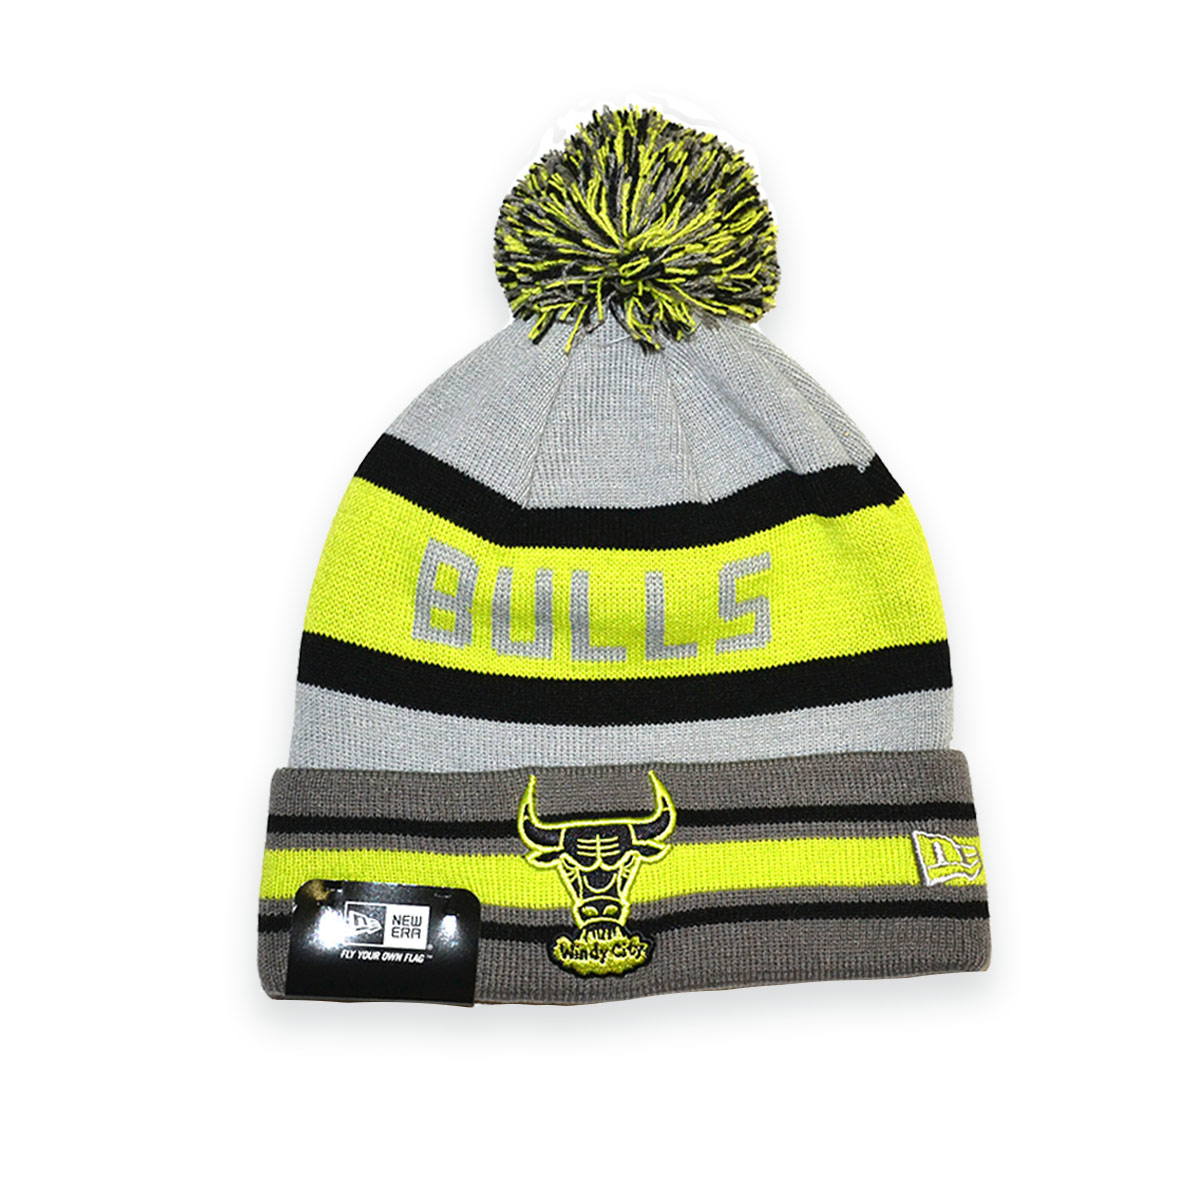 2adbf8661bd NEW ERA NBA CHICAGO BULLS GREEN GREY LOGO BEANIE HAT - MyCraze